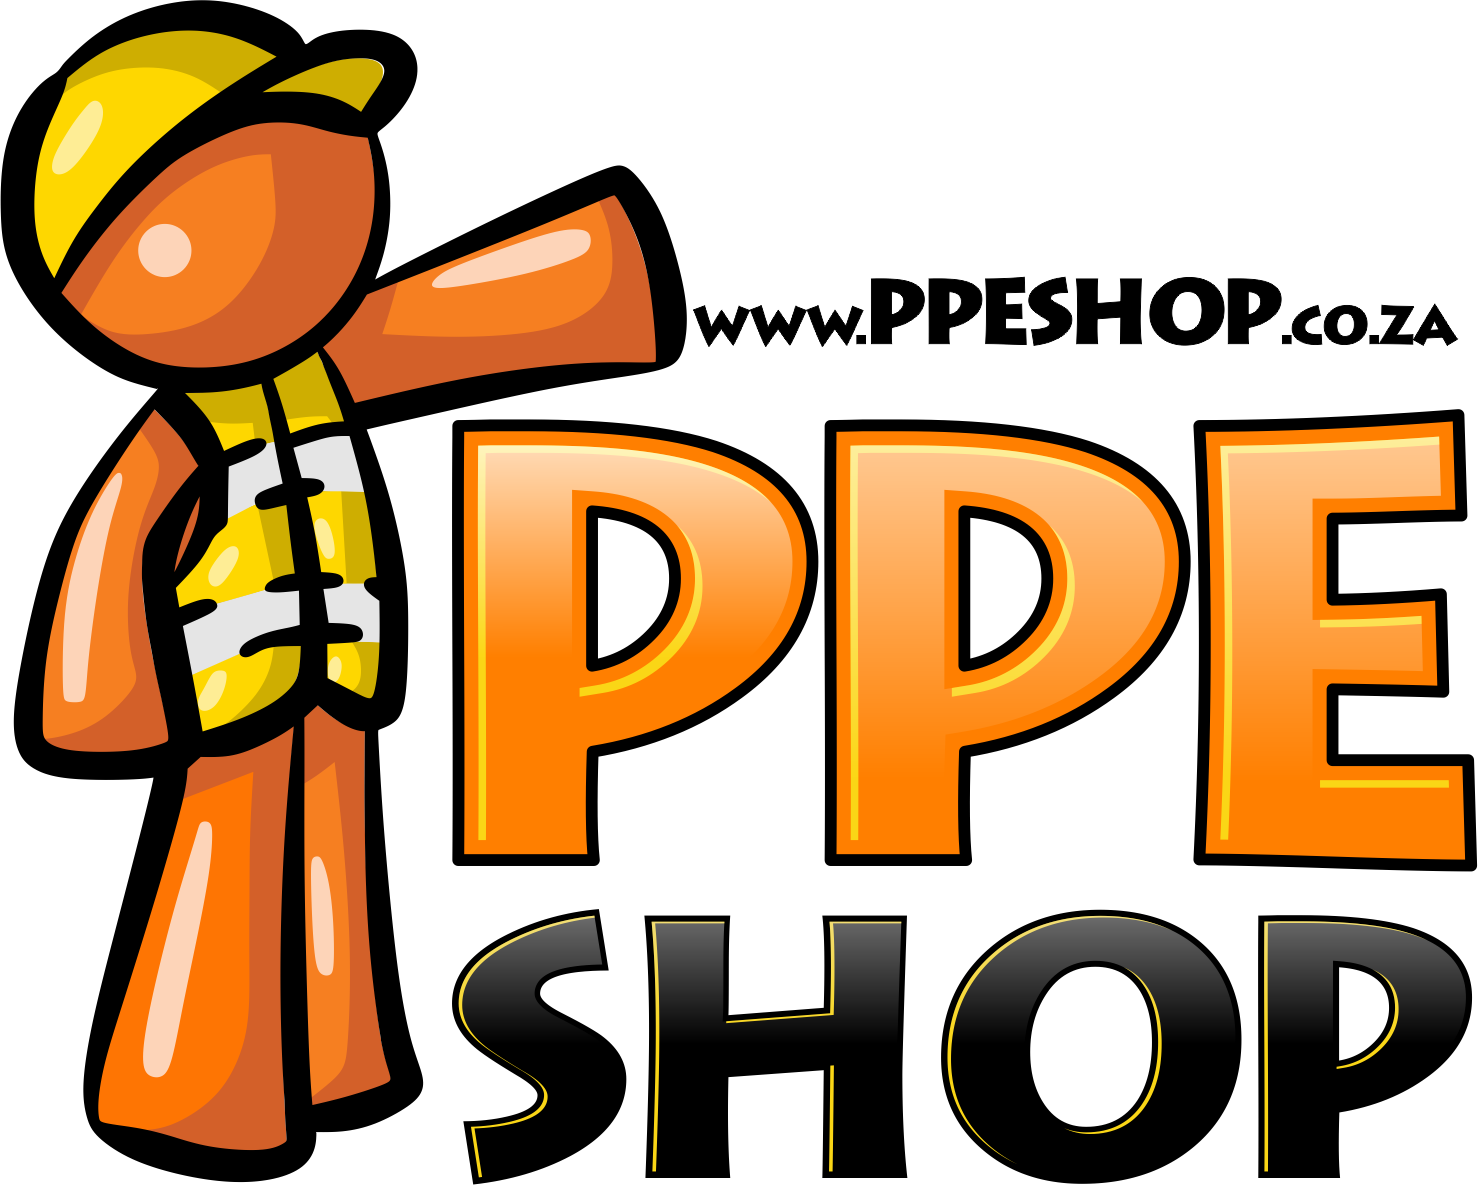 PPE Shop Safety Wear & Equipment, Occupational Health and